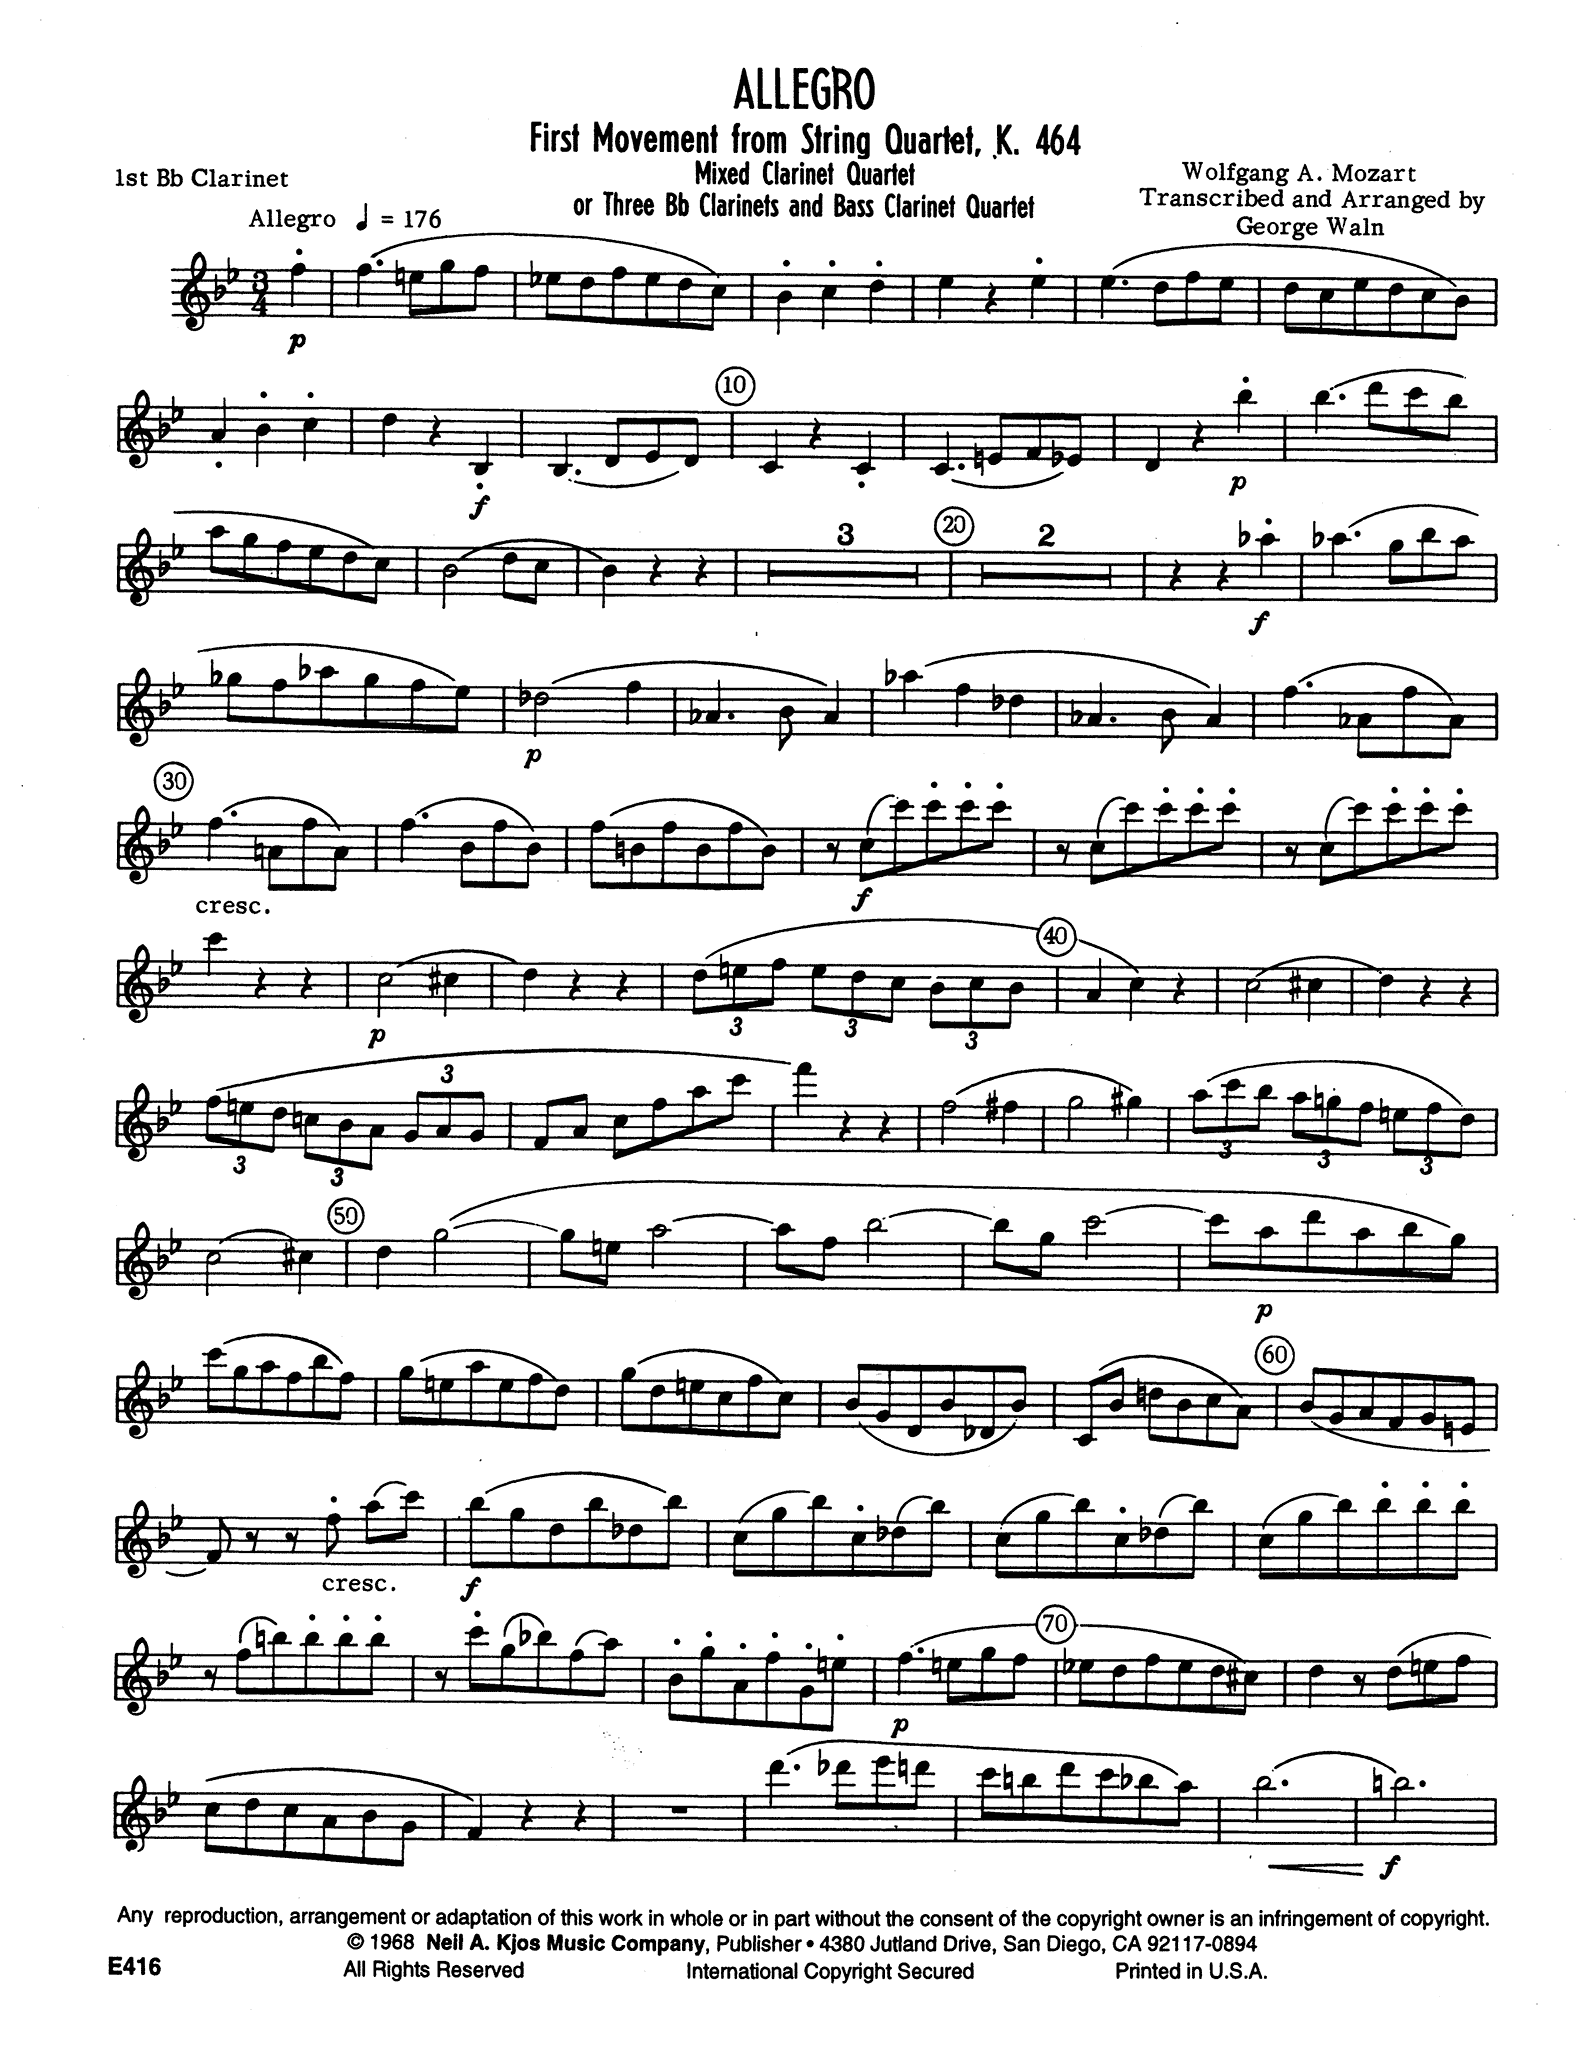 Allegro, from String Quartet No. 18 in A Major, K. 464 First Clarinet part